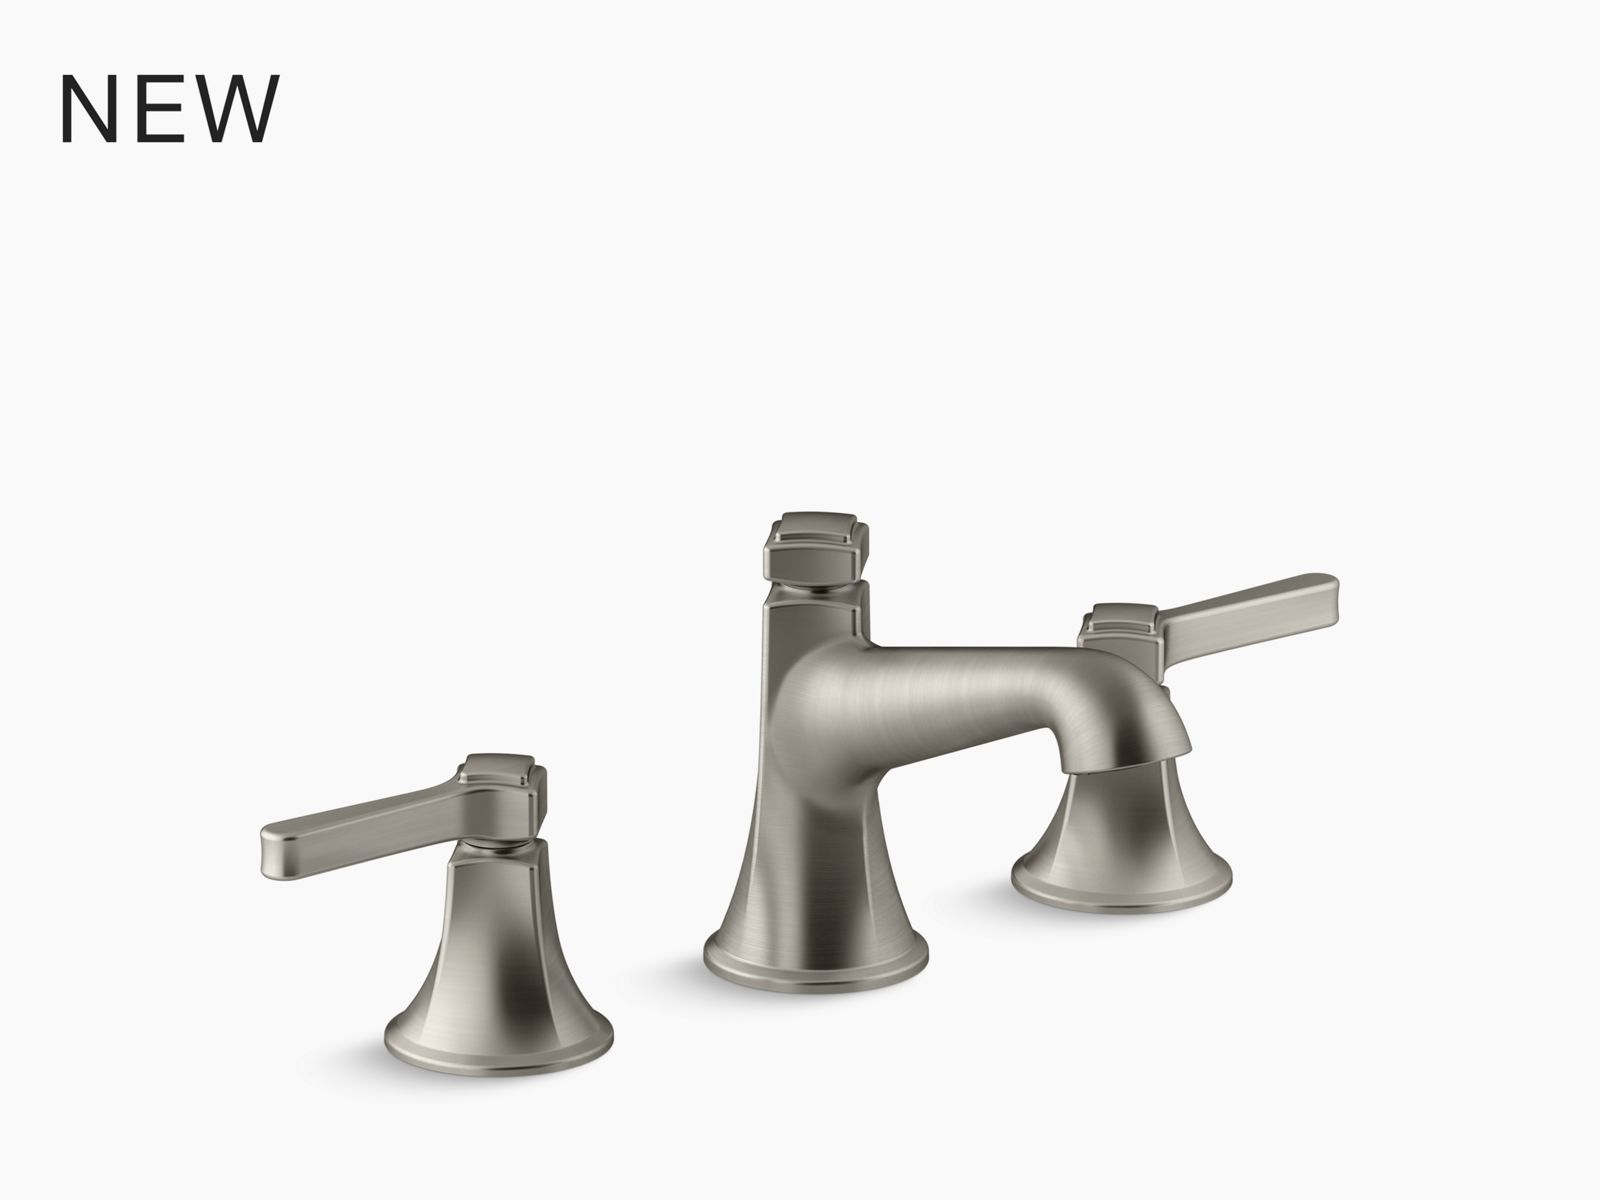 purist wall mount bathroom sink faucet trim with 9 90 degree angle spout and lever handles requires valve